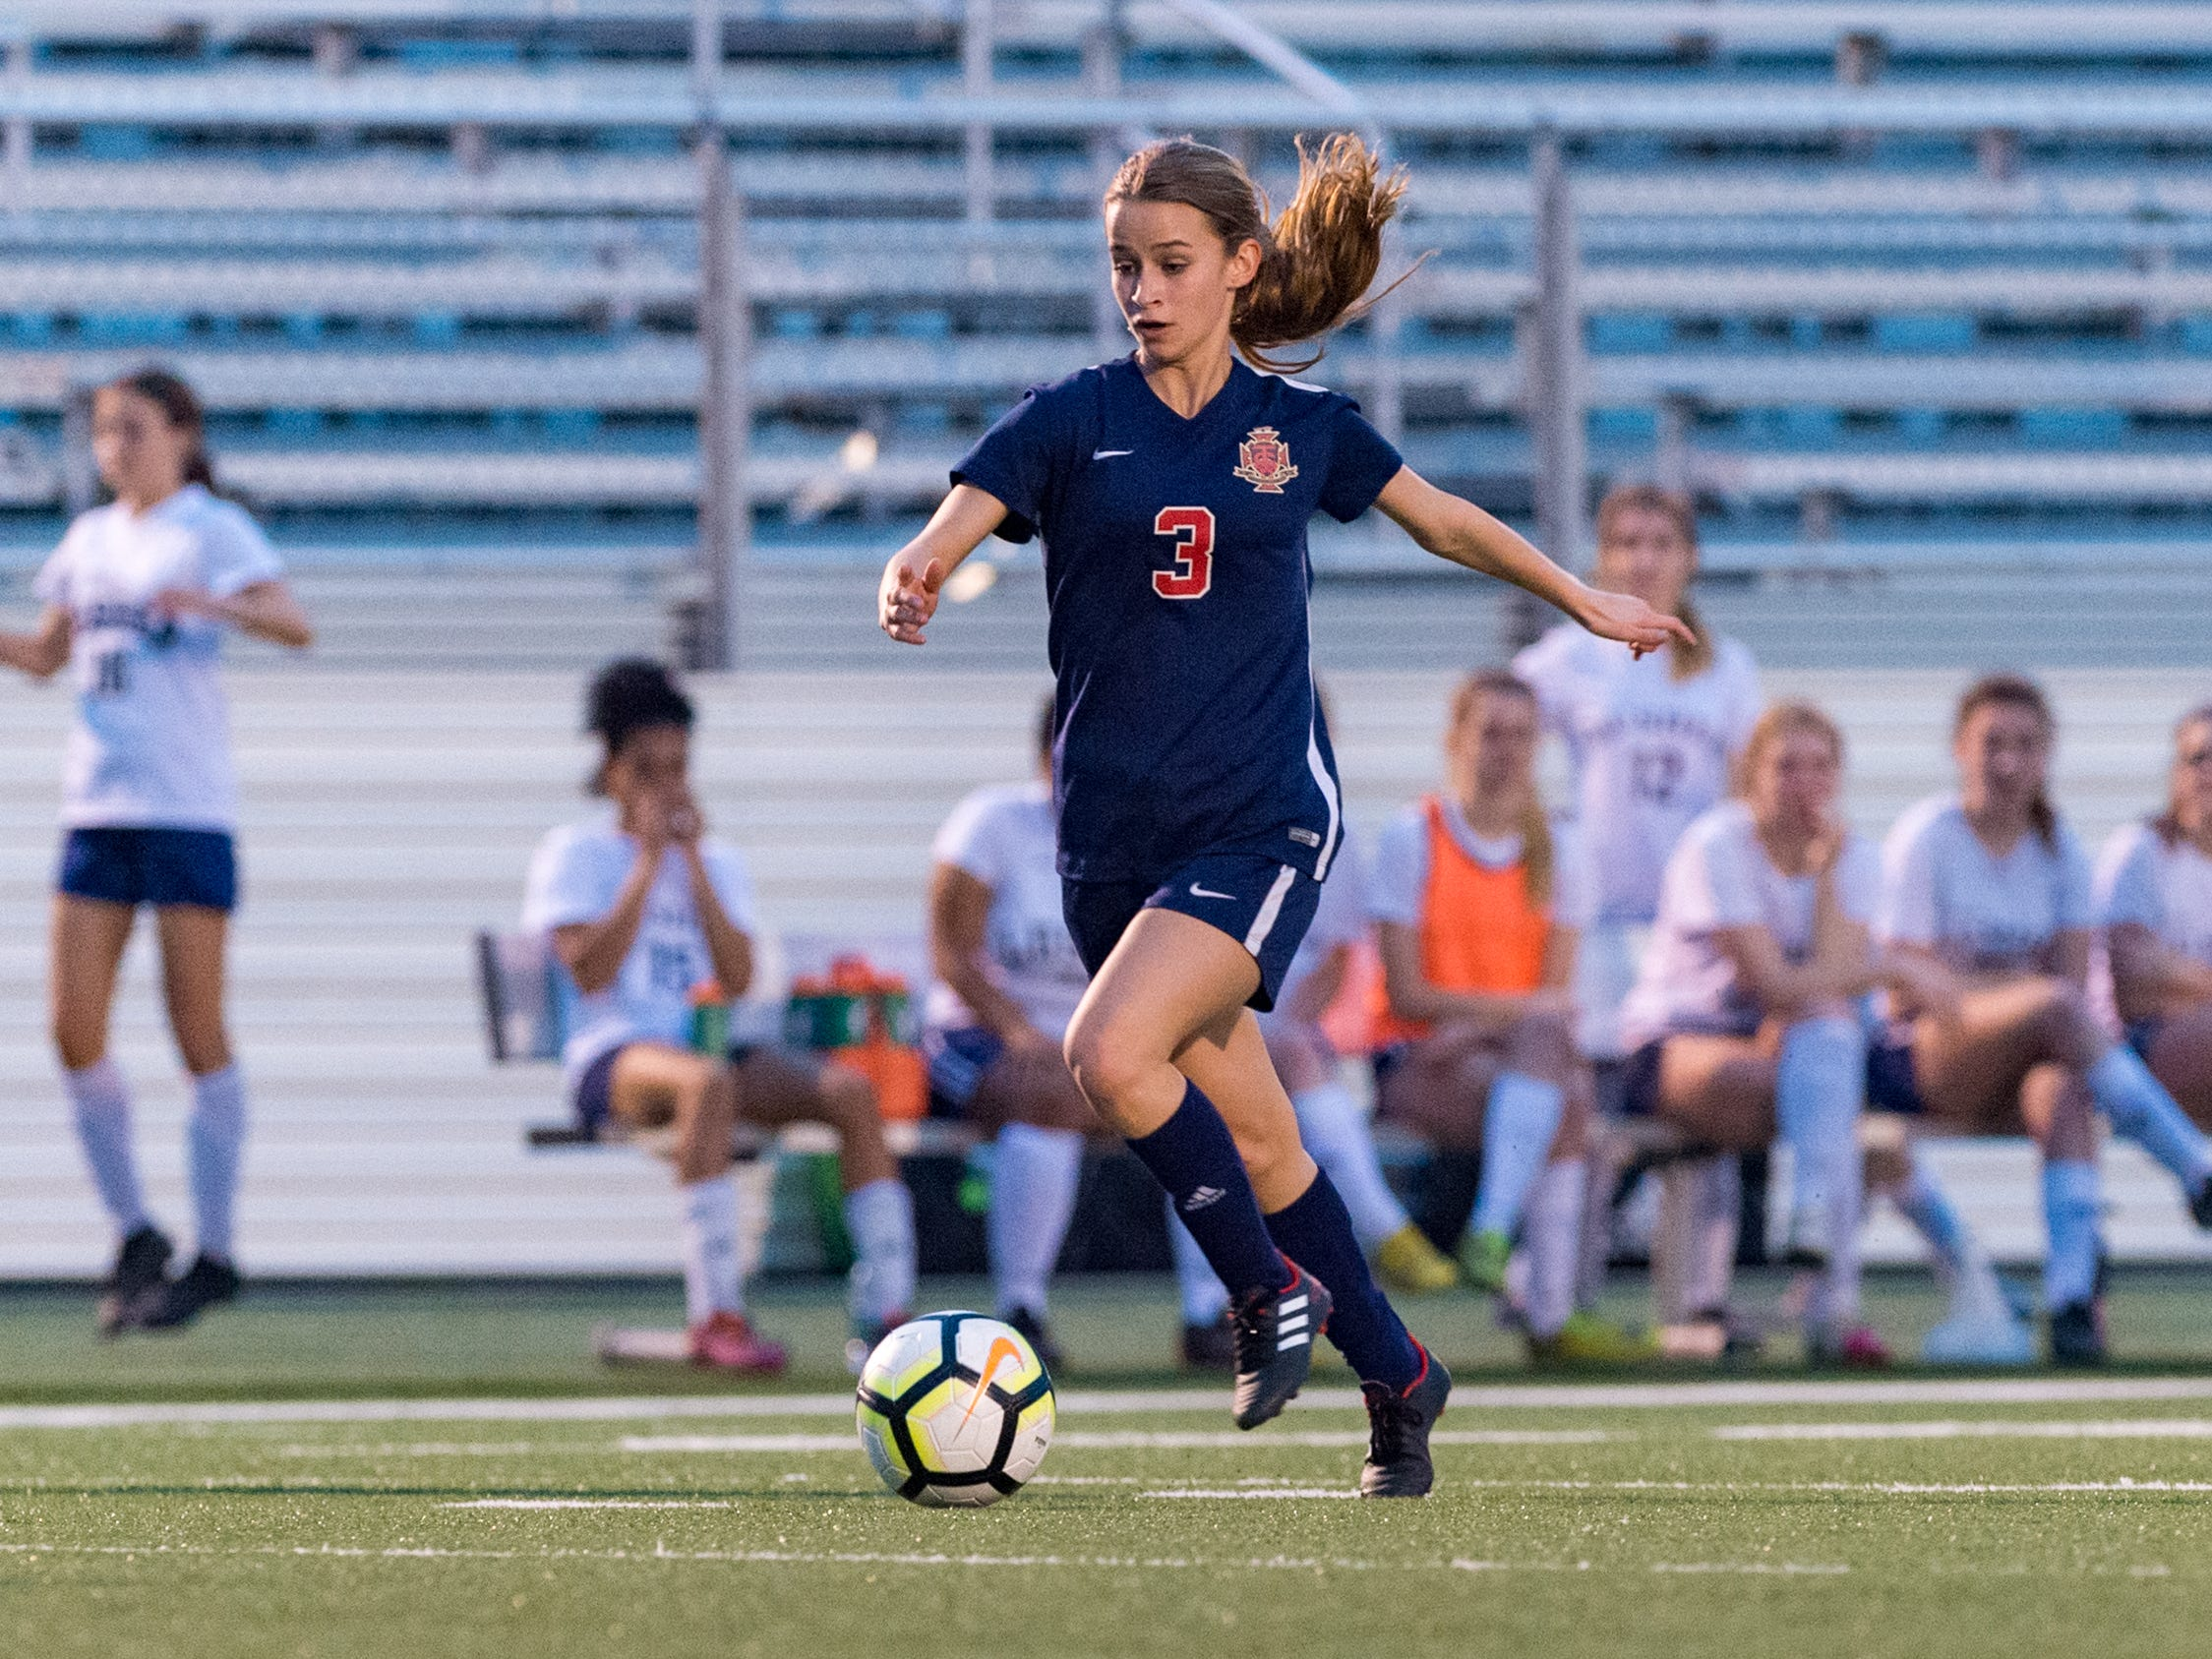 Emily Sonnier drives to the goal and scores as Teurlings Catholic shuts out Lutcher 8-0 in the second round of the LHSAA soccer playoffs.  Tuesday, Feb. 5, 2019.